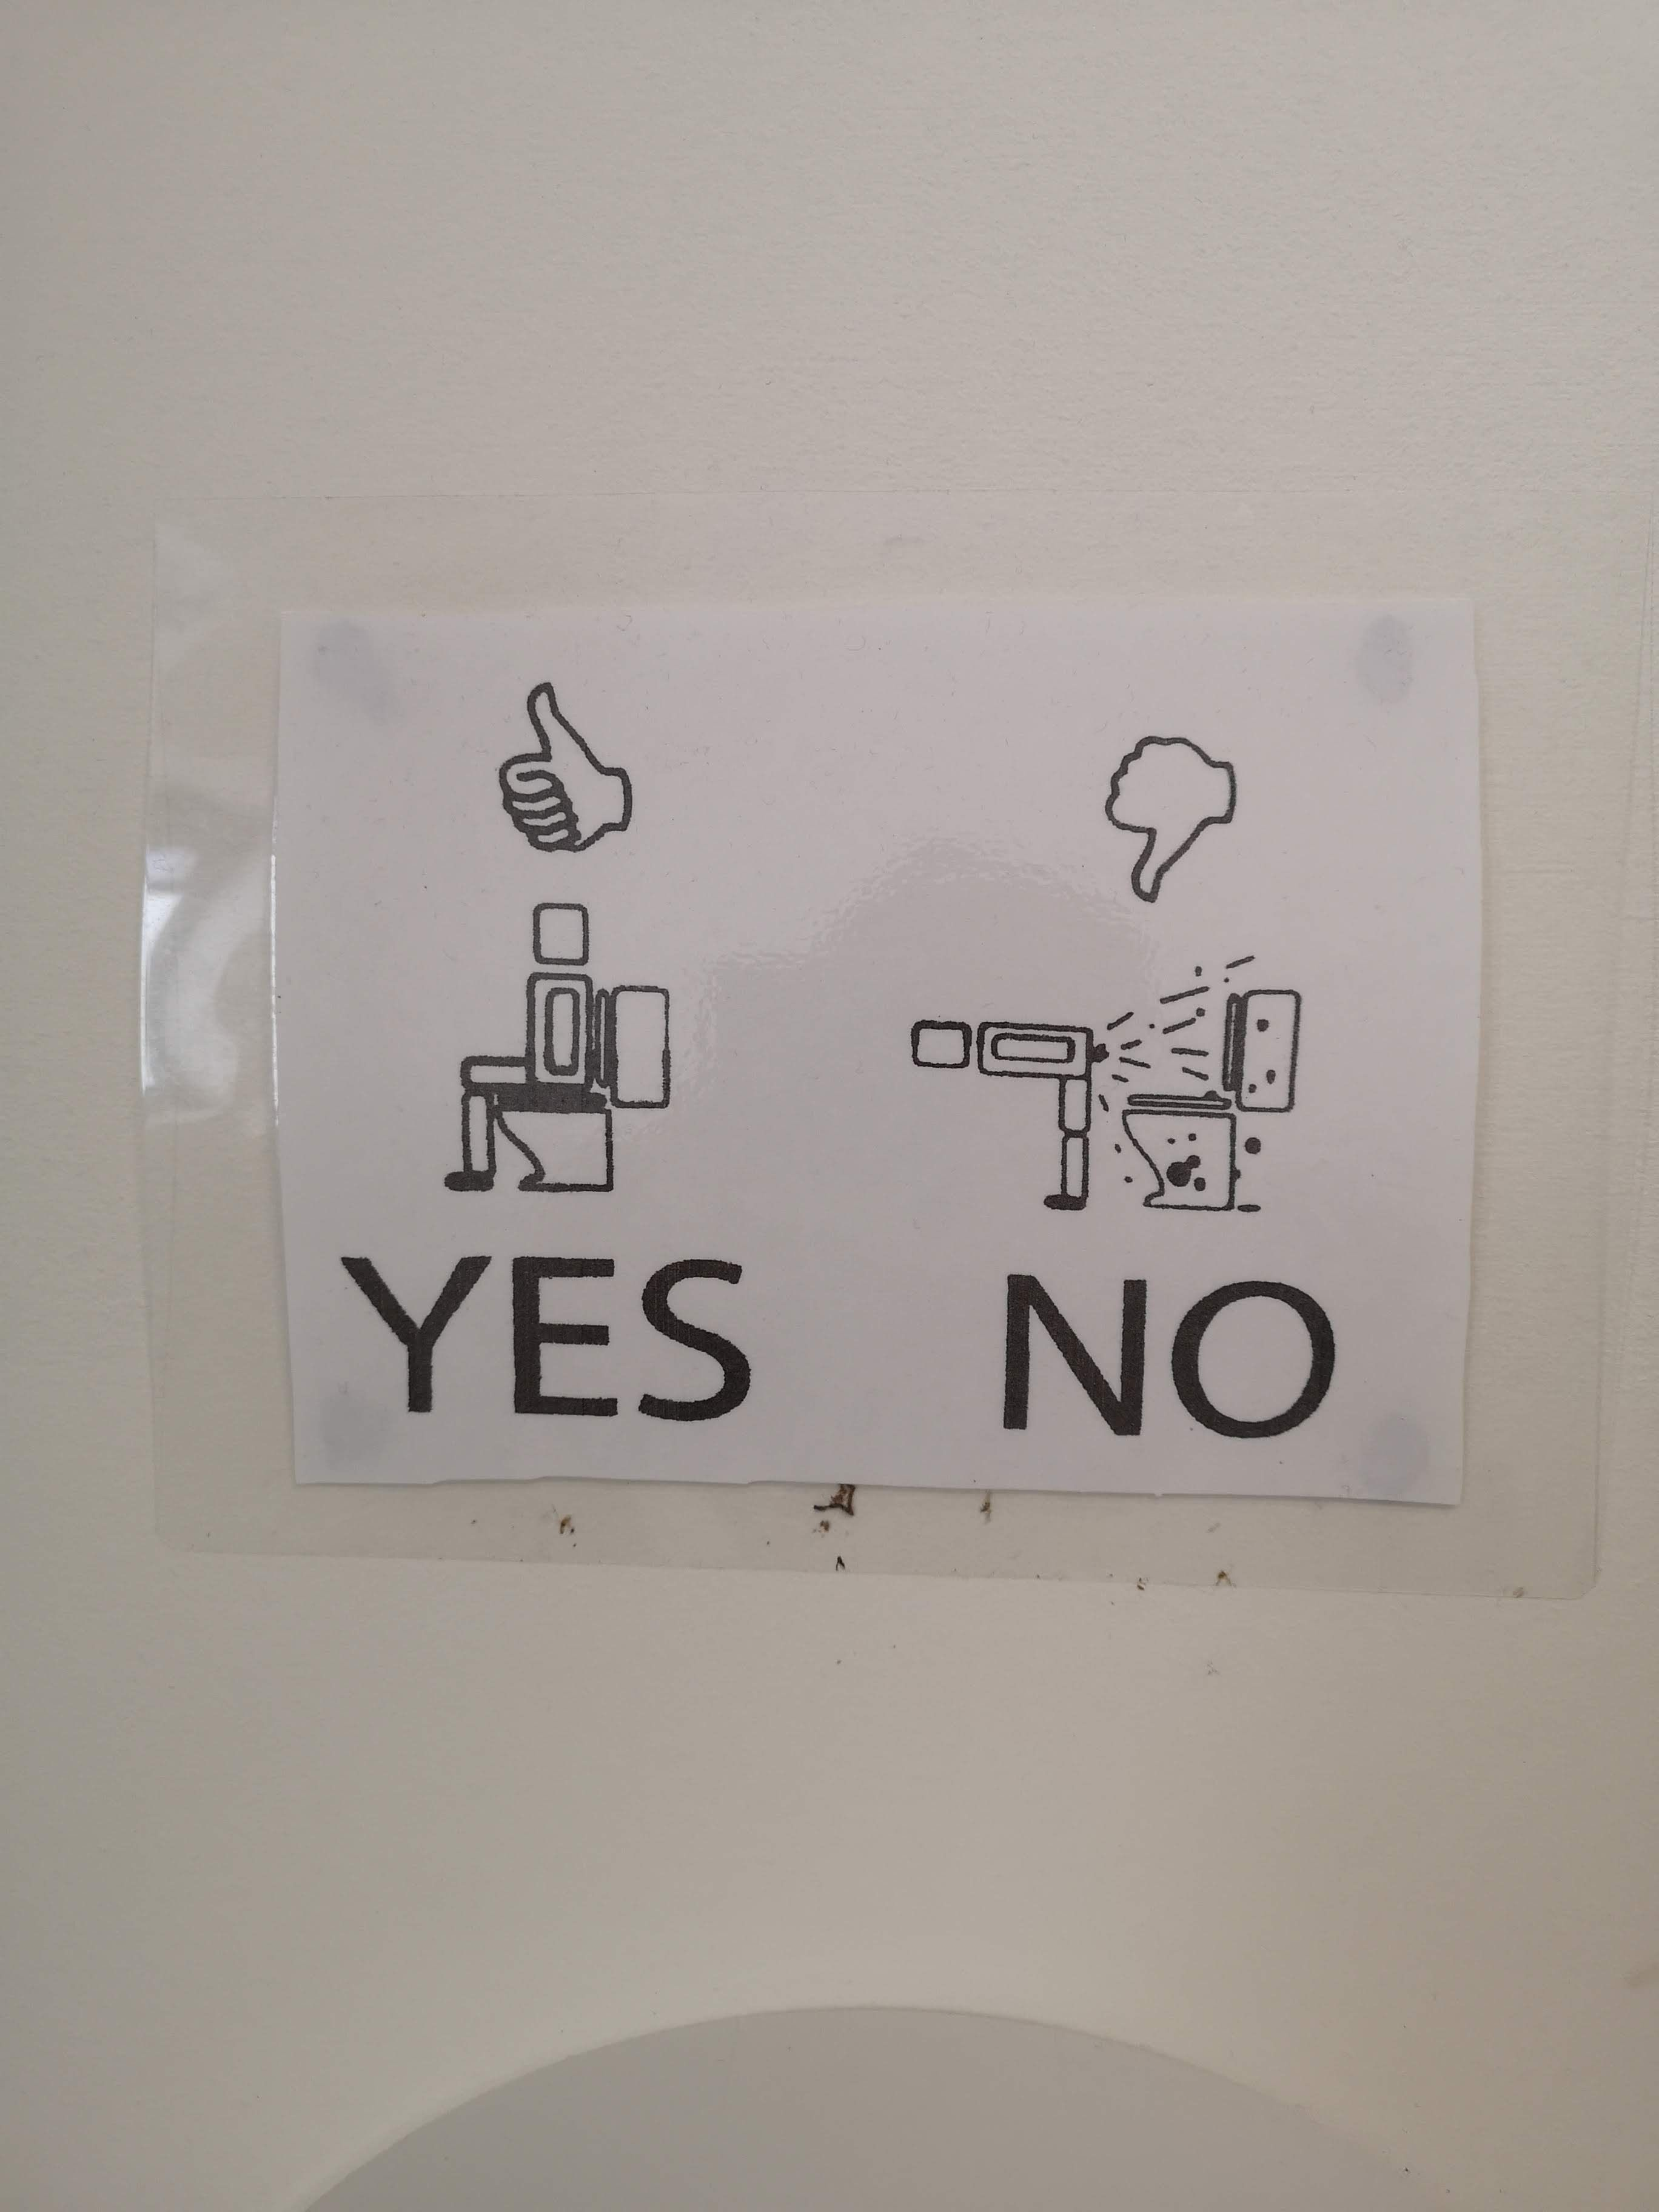 Instructions on how to use the toilet in my office